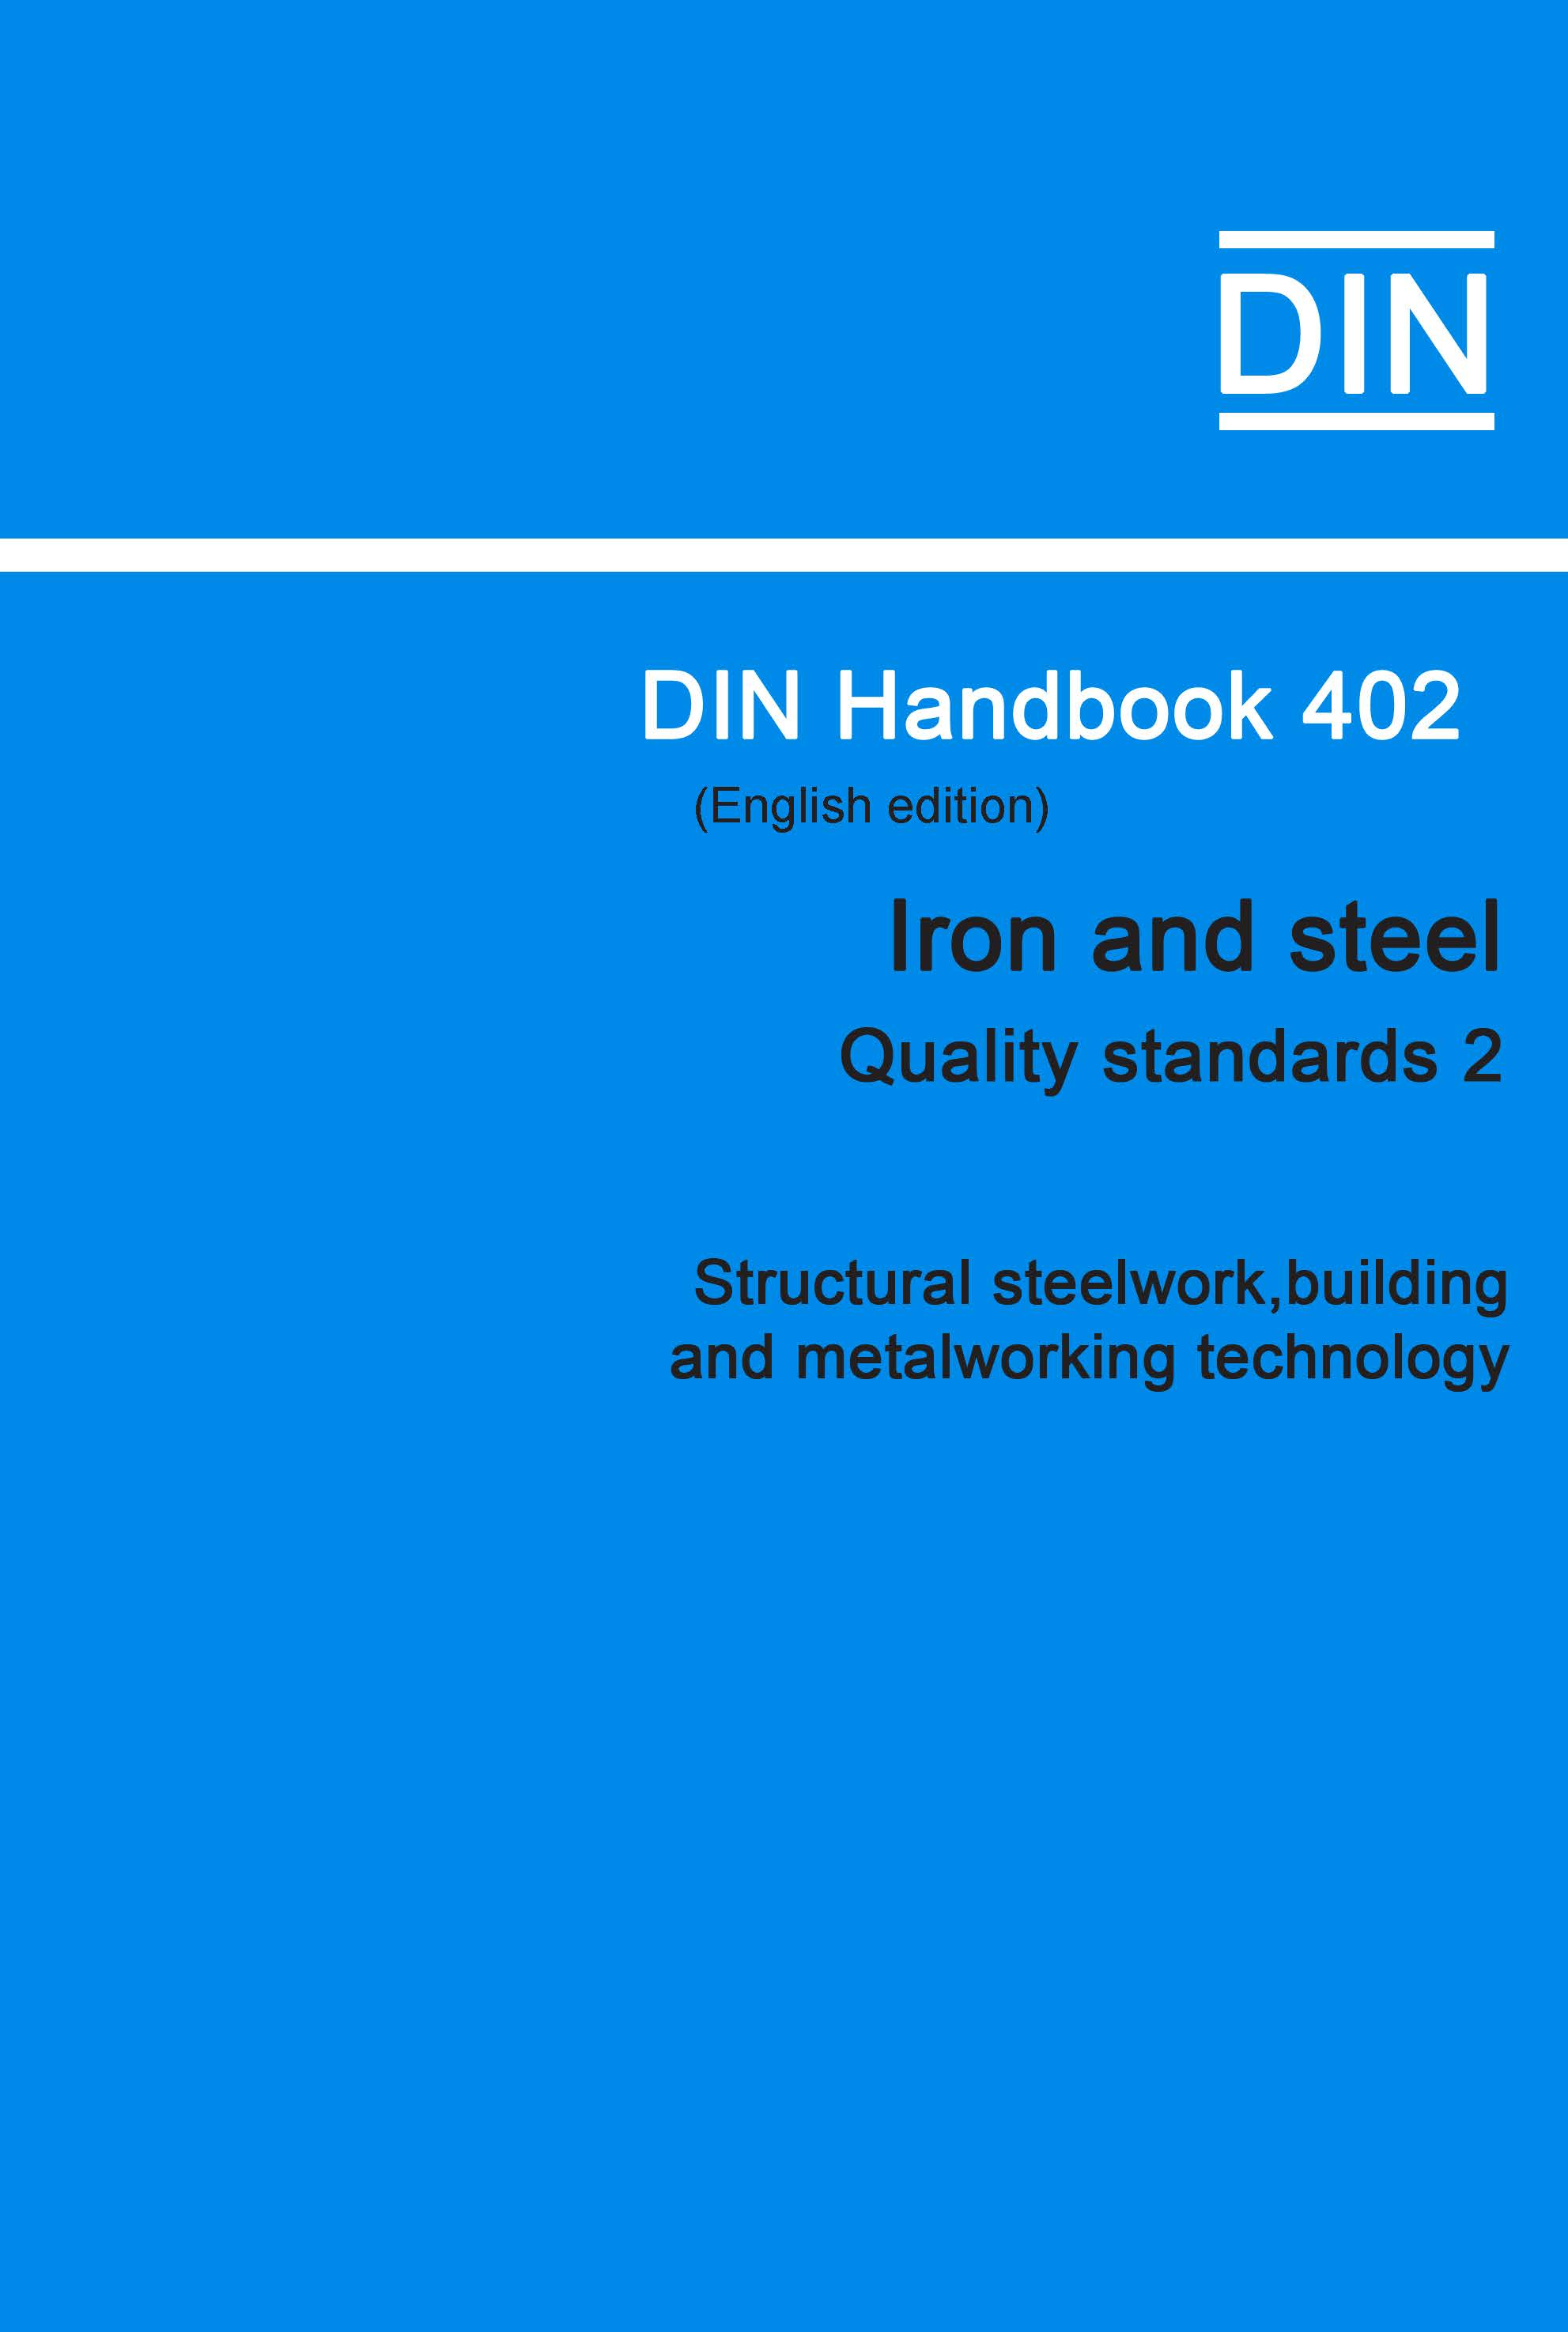 (DIN Handbook  402 Iron And Steel (Quality Standar...